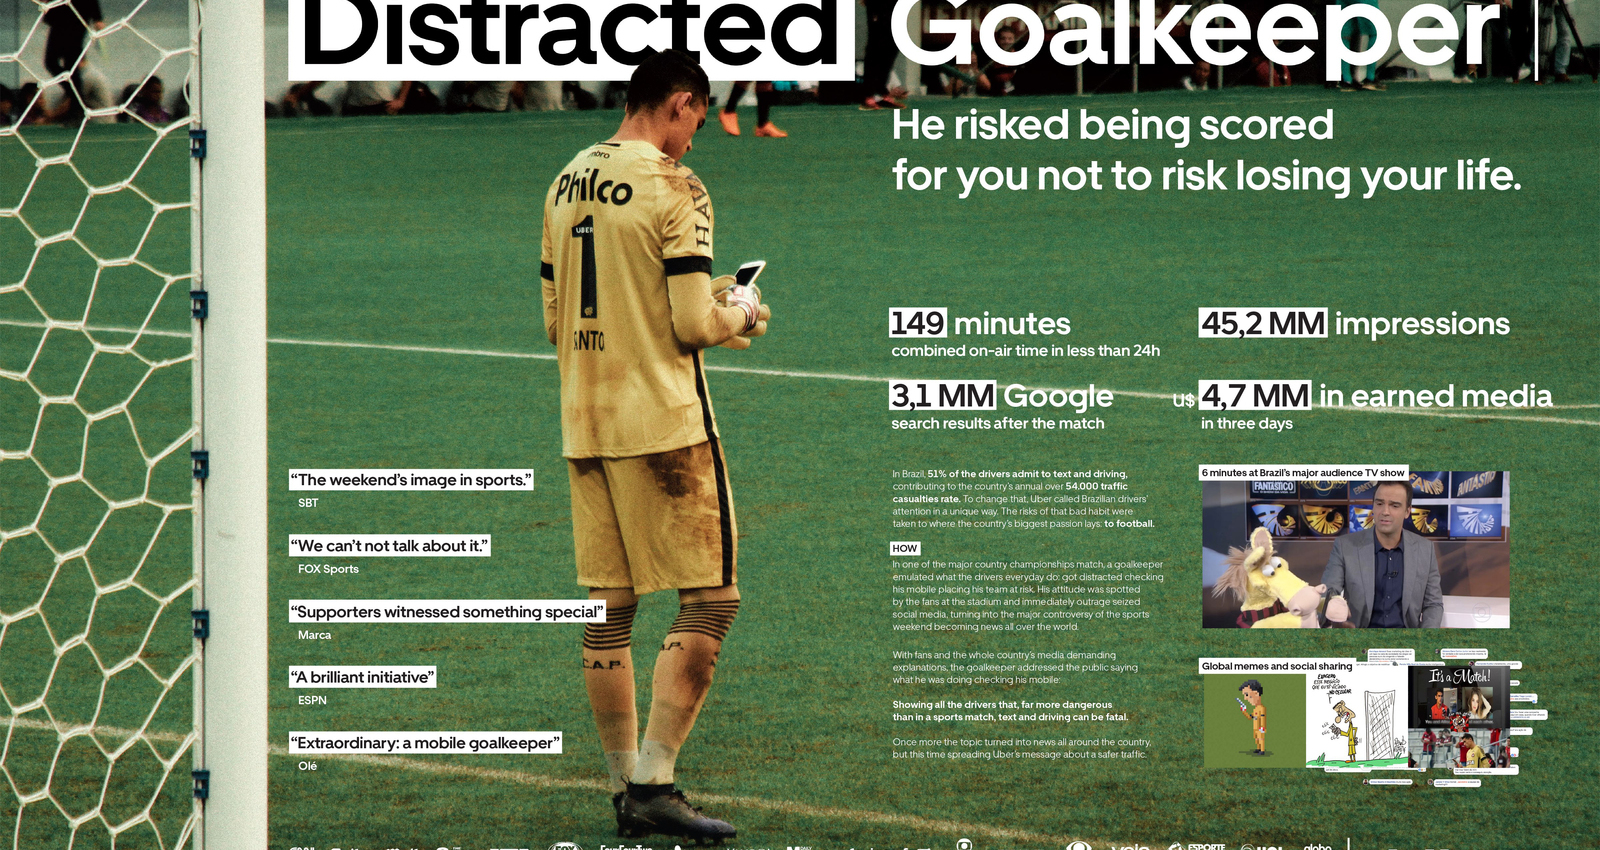 Distracted Goalkepper